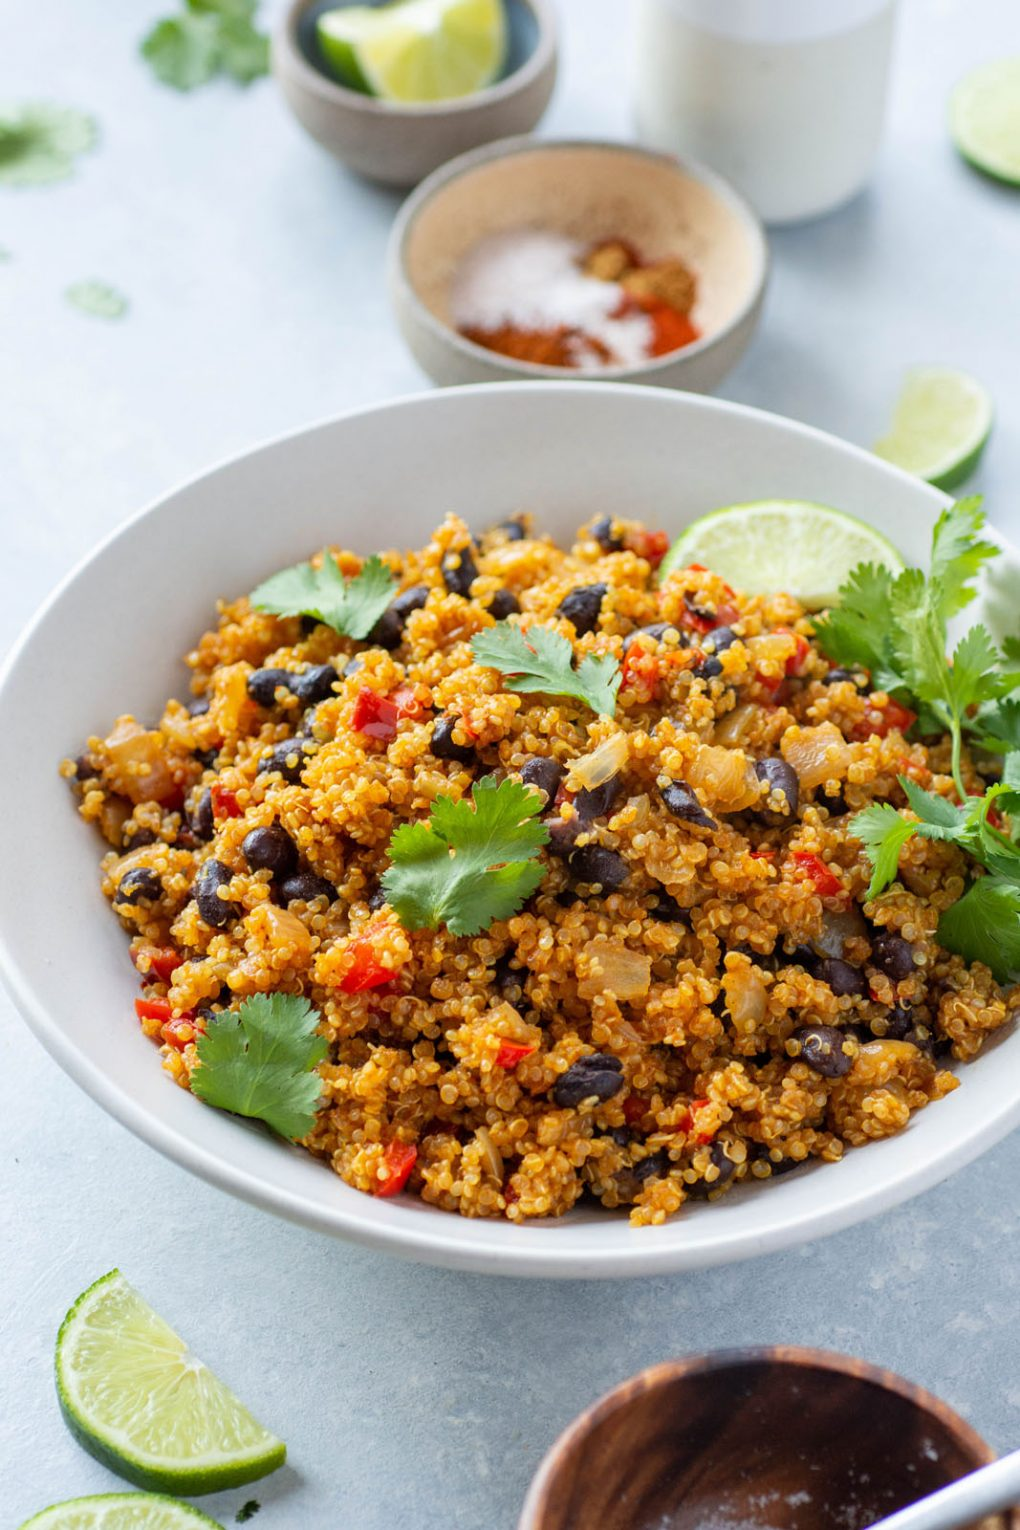 Side angle shot of southwest quinoa with black beans, diced red pepper, fresh cilantro, and garnished with lime wedges. In a white bowl on a light colored background.